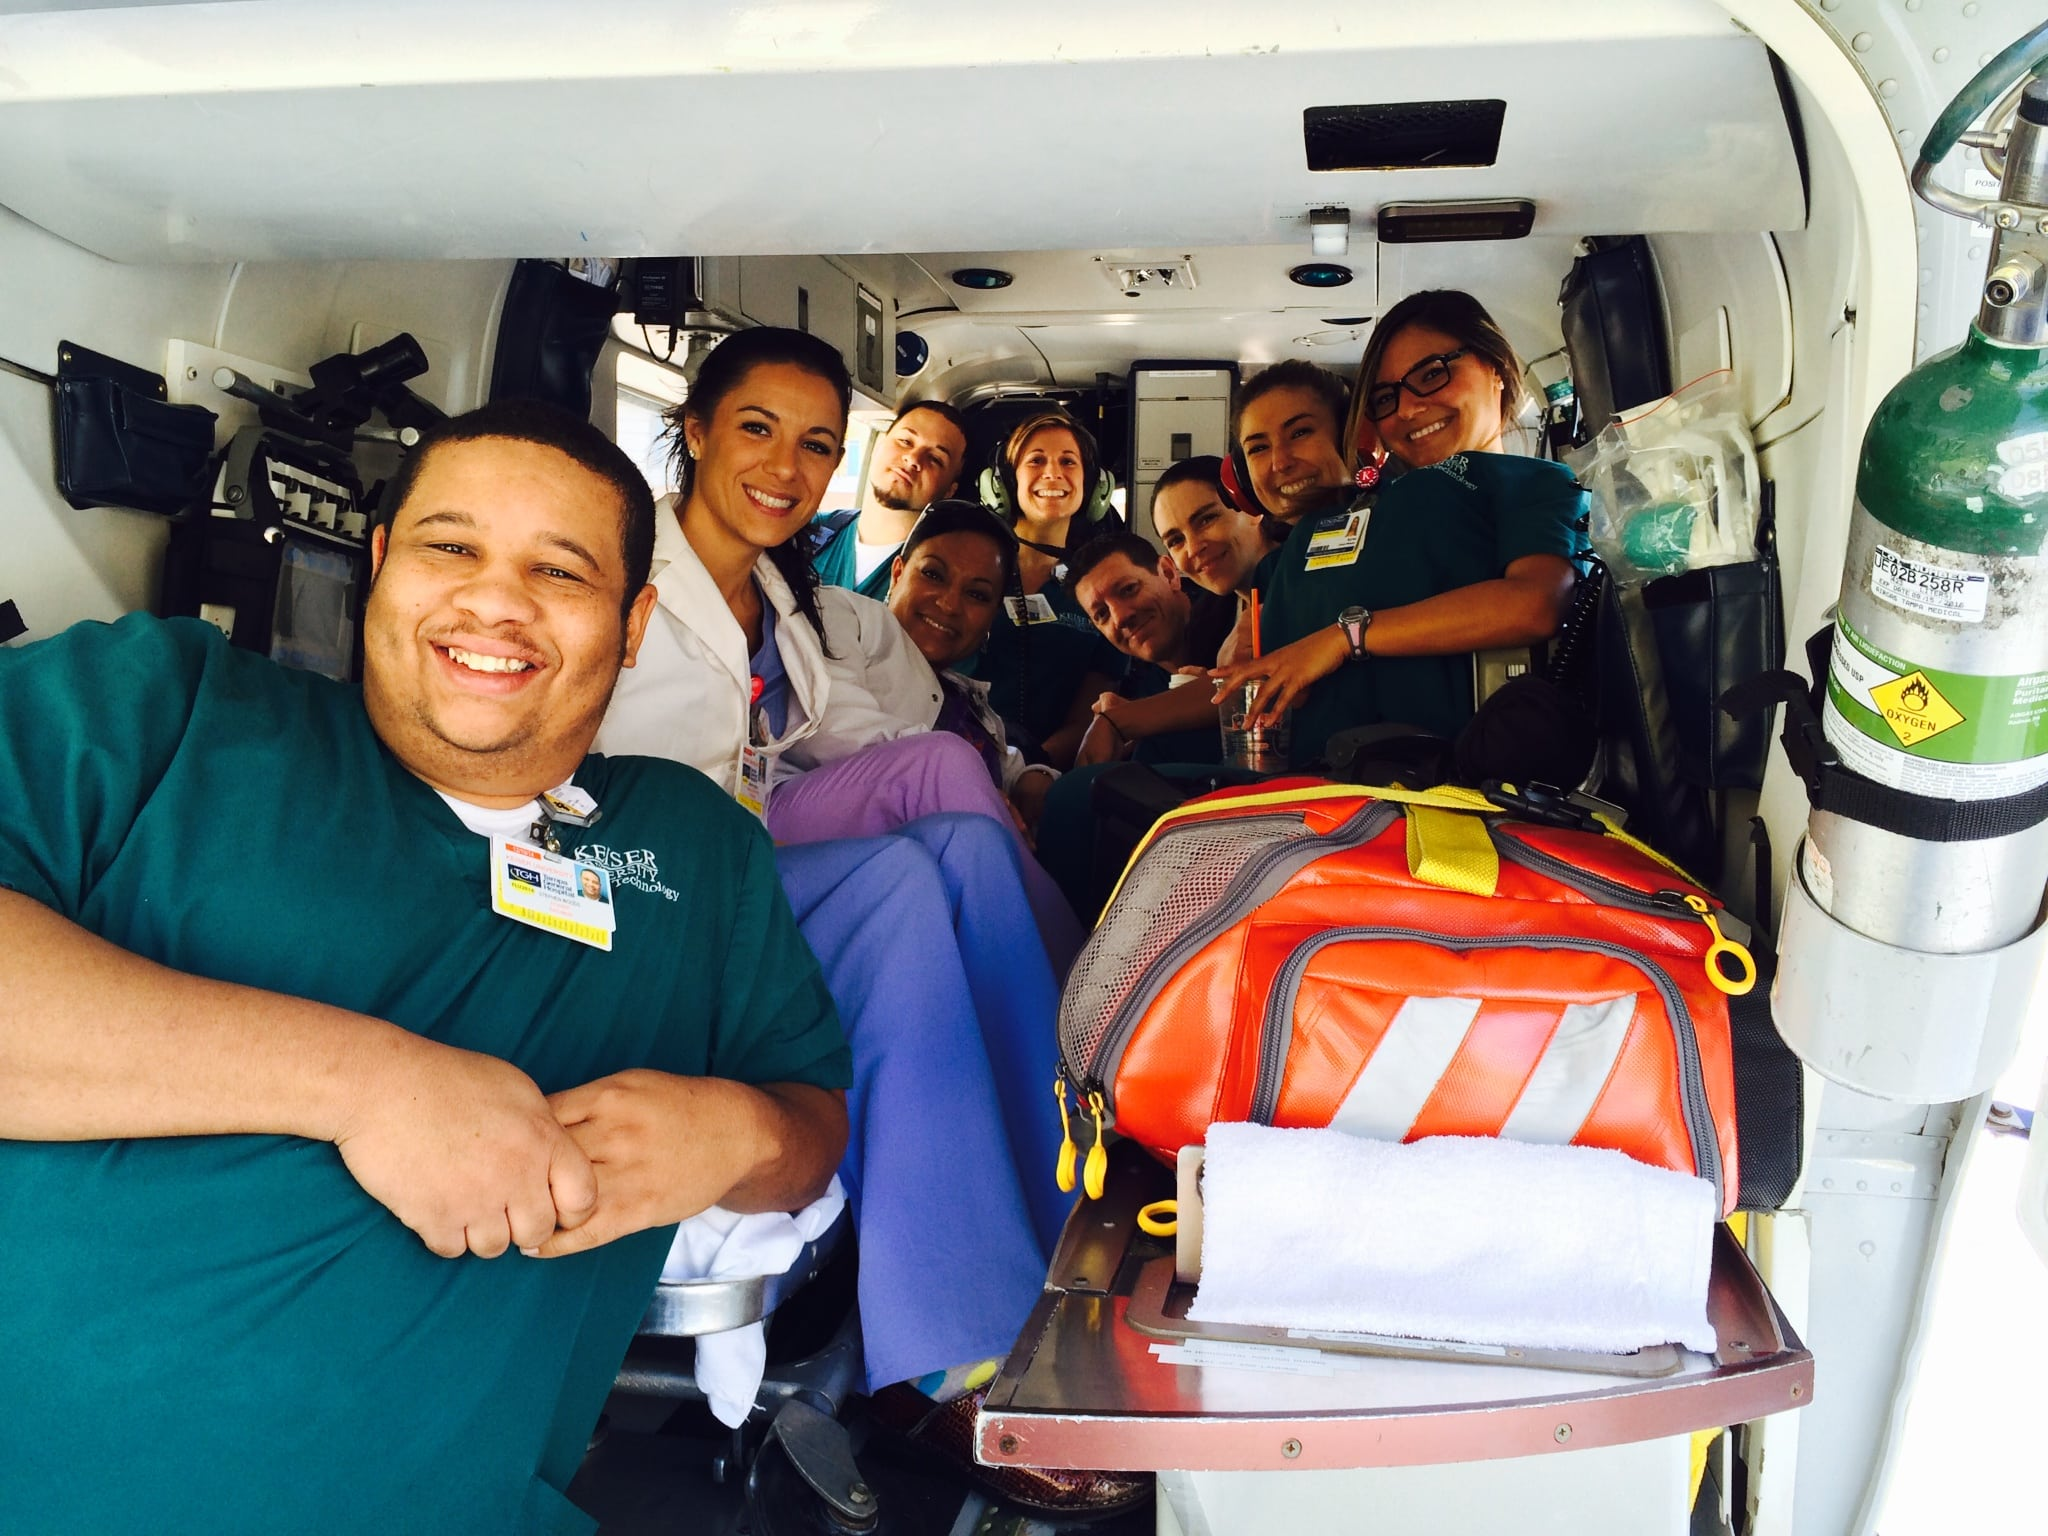 Tampa's Radiologic Technology Program Visits Tampa General Hospital Trauma Center